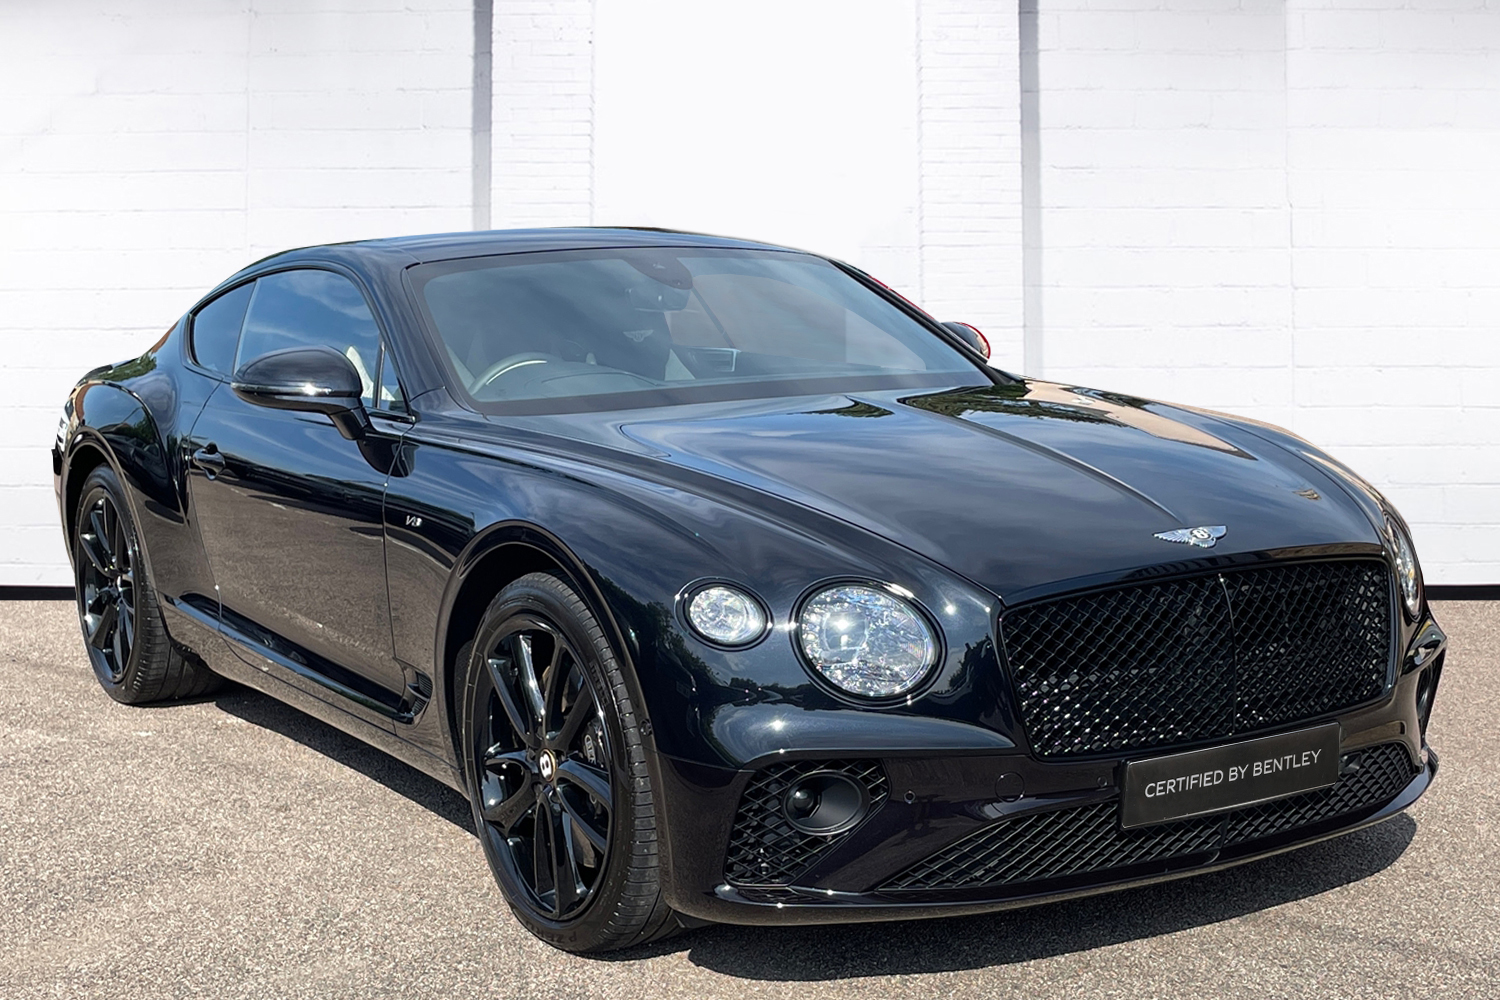 Bentley Continental GT 4.0 V8 - Mulliner Driving Specification with Black Painted Wheels Automatic 2 door Coupe